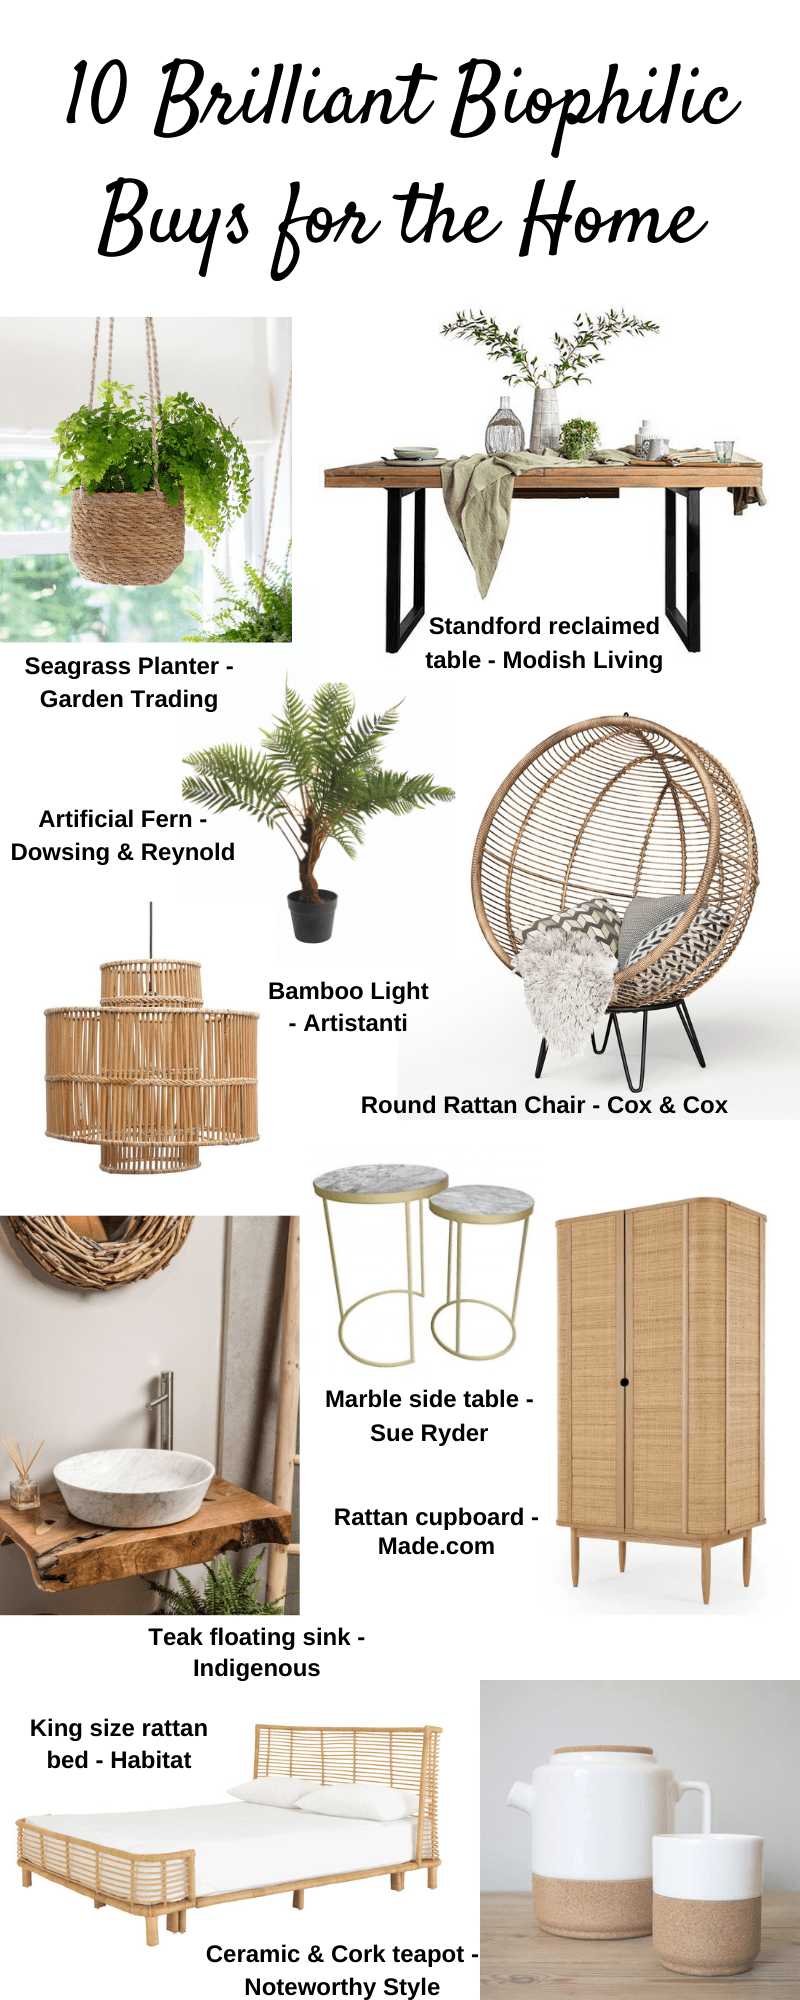 10 Brilliant Biophilic Buys for the Home